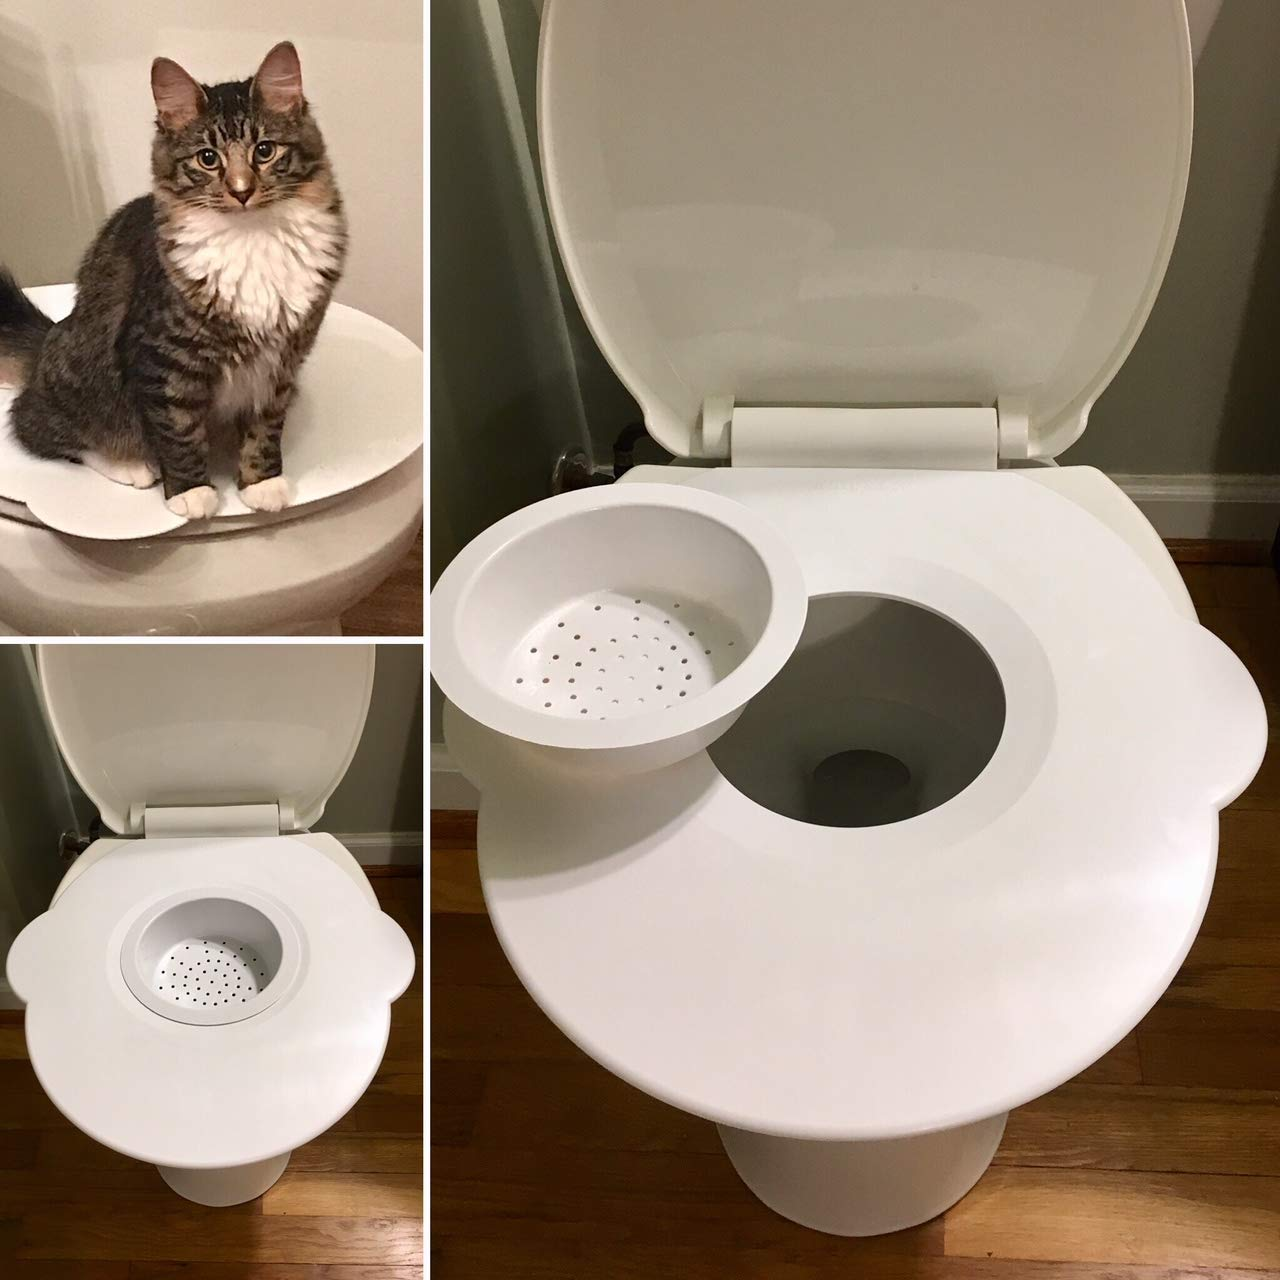 Cat Toilet Seat Cover Svwilp Nl